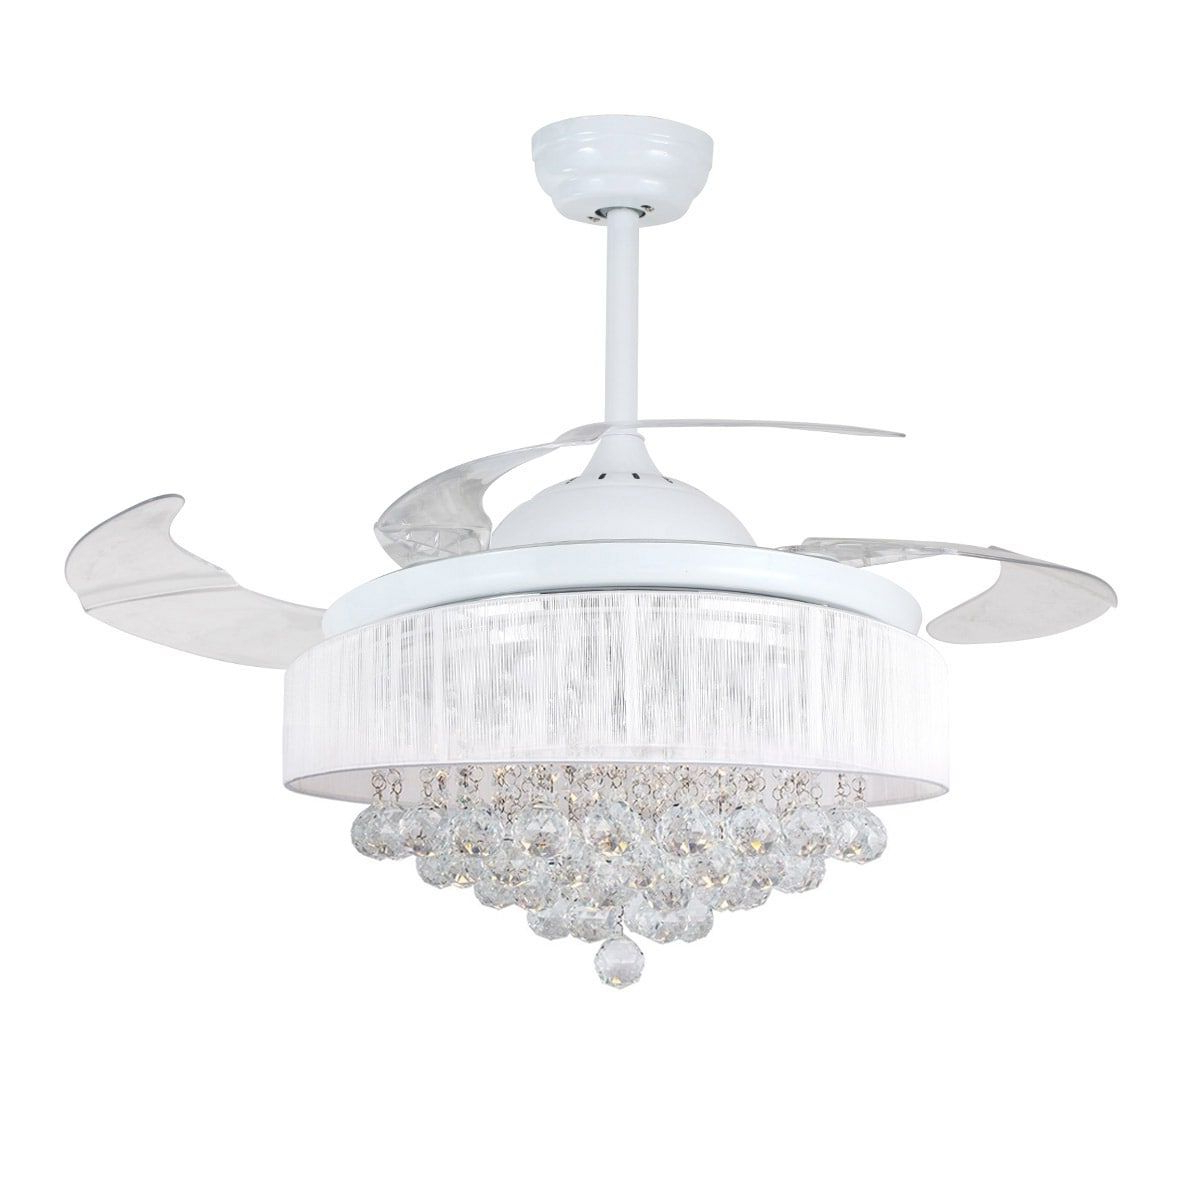 Fashionable Parrot Modern 42 Inch Led Ceiling Fan With Remote Crystal For Broxburne 4 Blade Led Ceiling Fans With Remote (View 11 of 20)